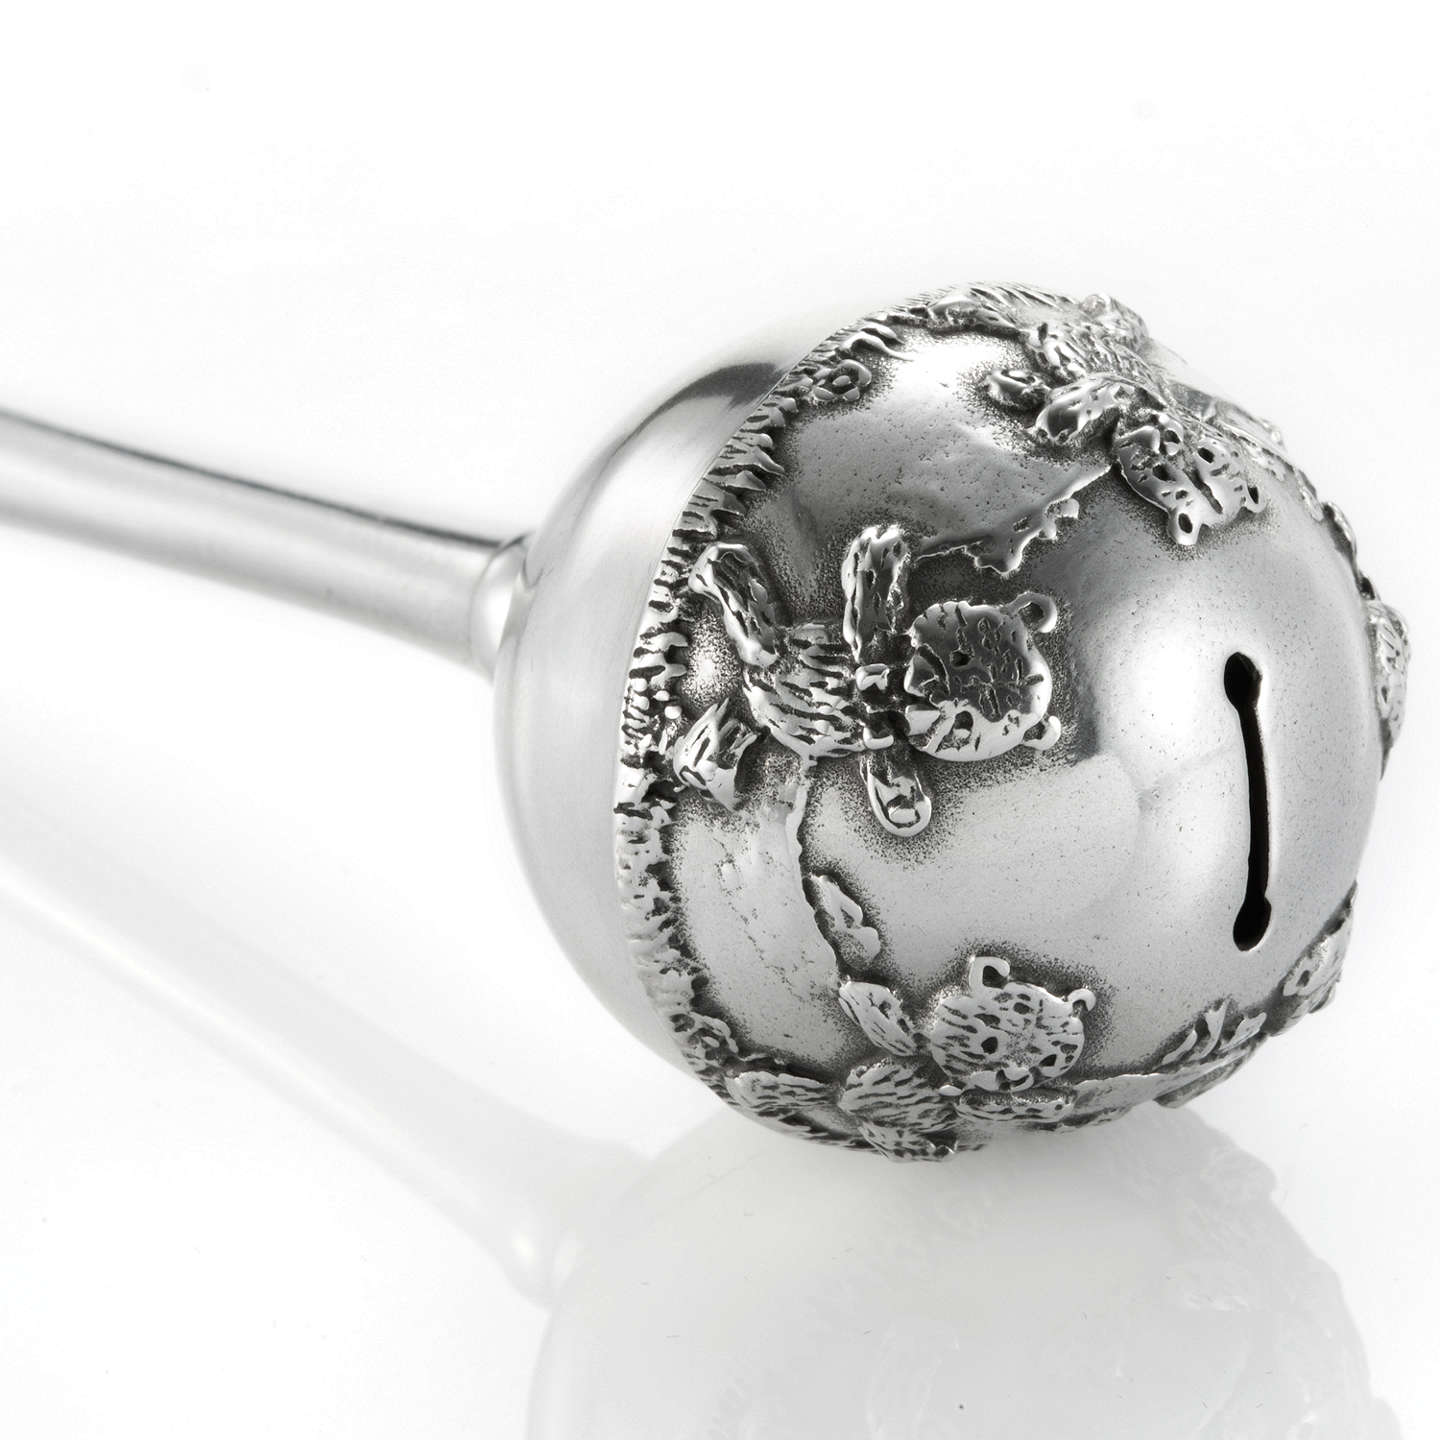 BuyRoyal Selangor Baby Rattle, Silver Online at johnlewis.com